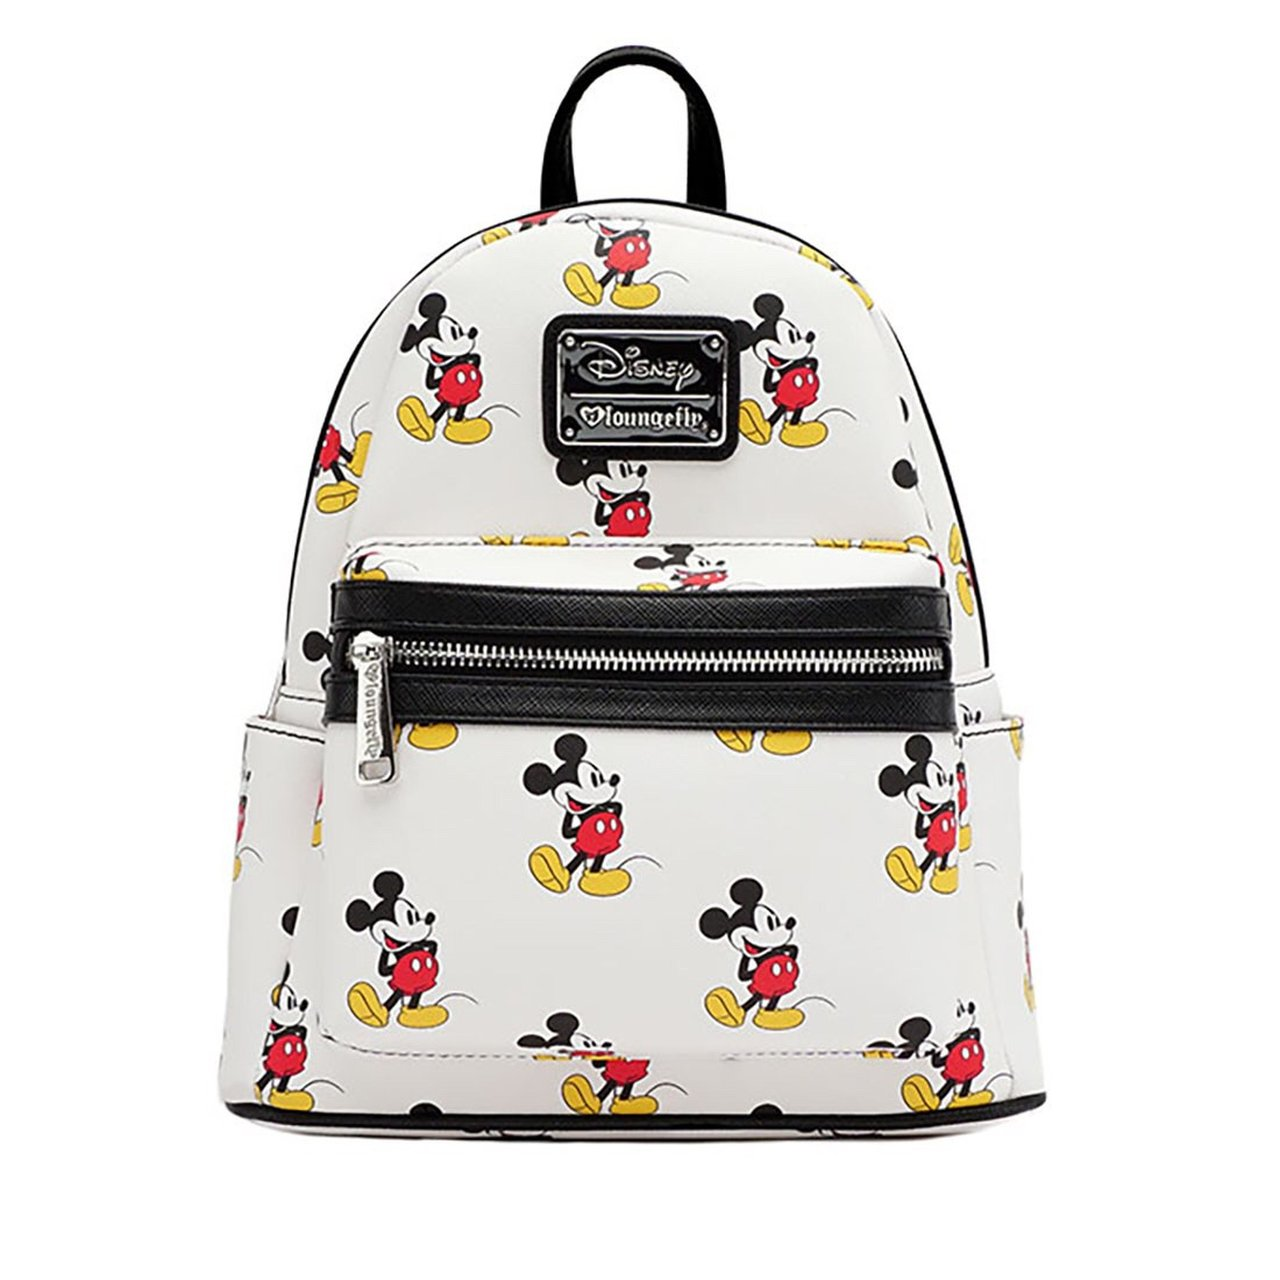 e0b0800dc150 Loungefly Mickey Mini Backpack Brand New Condition Never - Depop